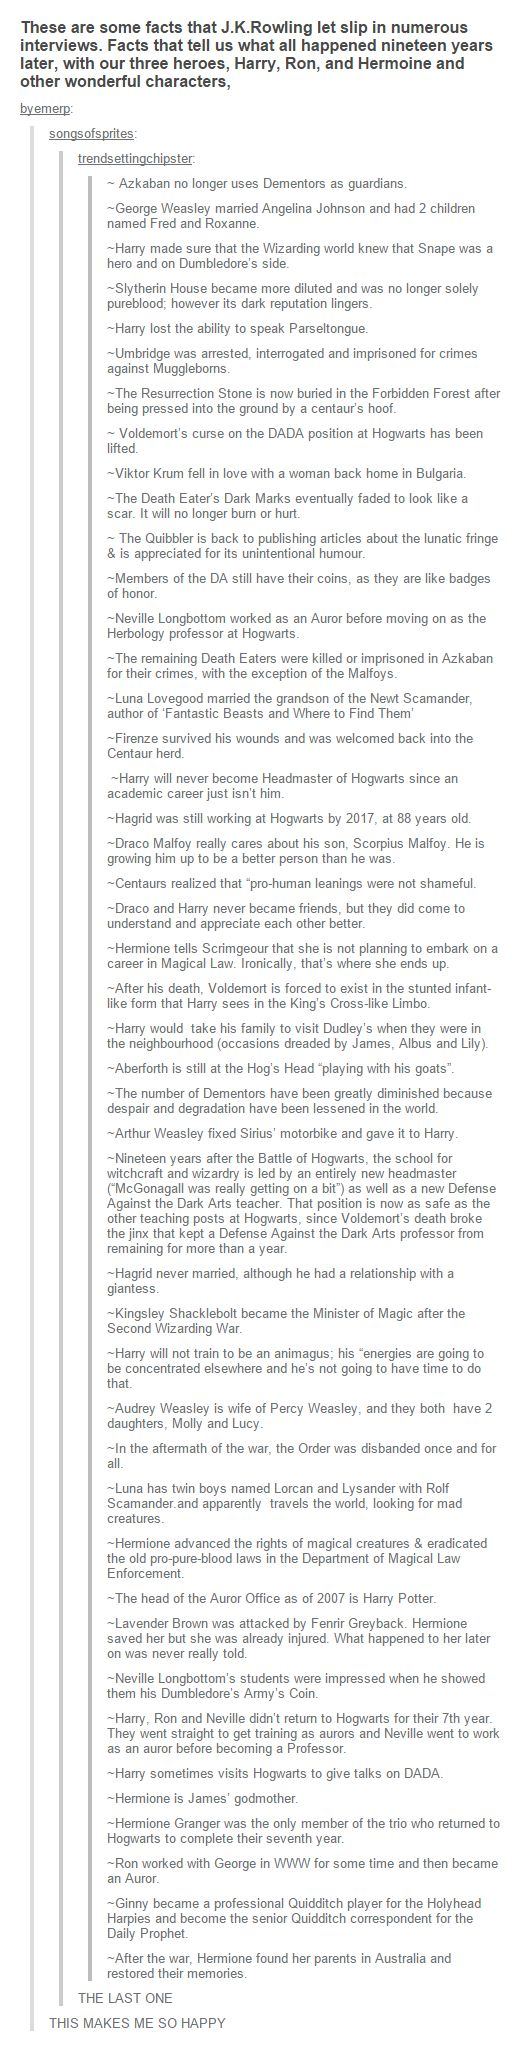 Harry Potter 19 Years Later... - Imgur